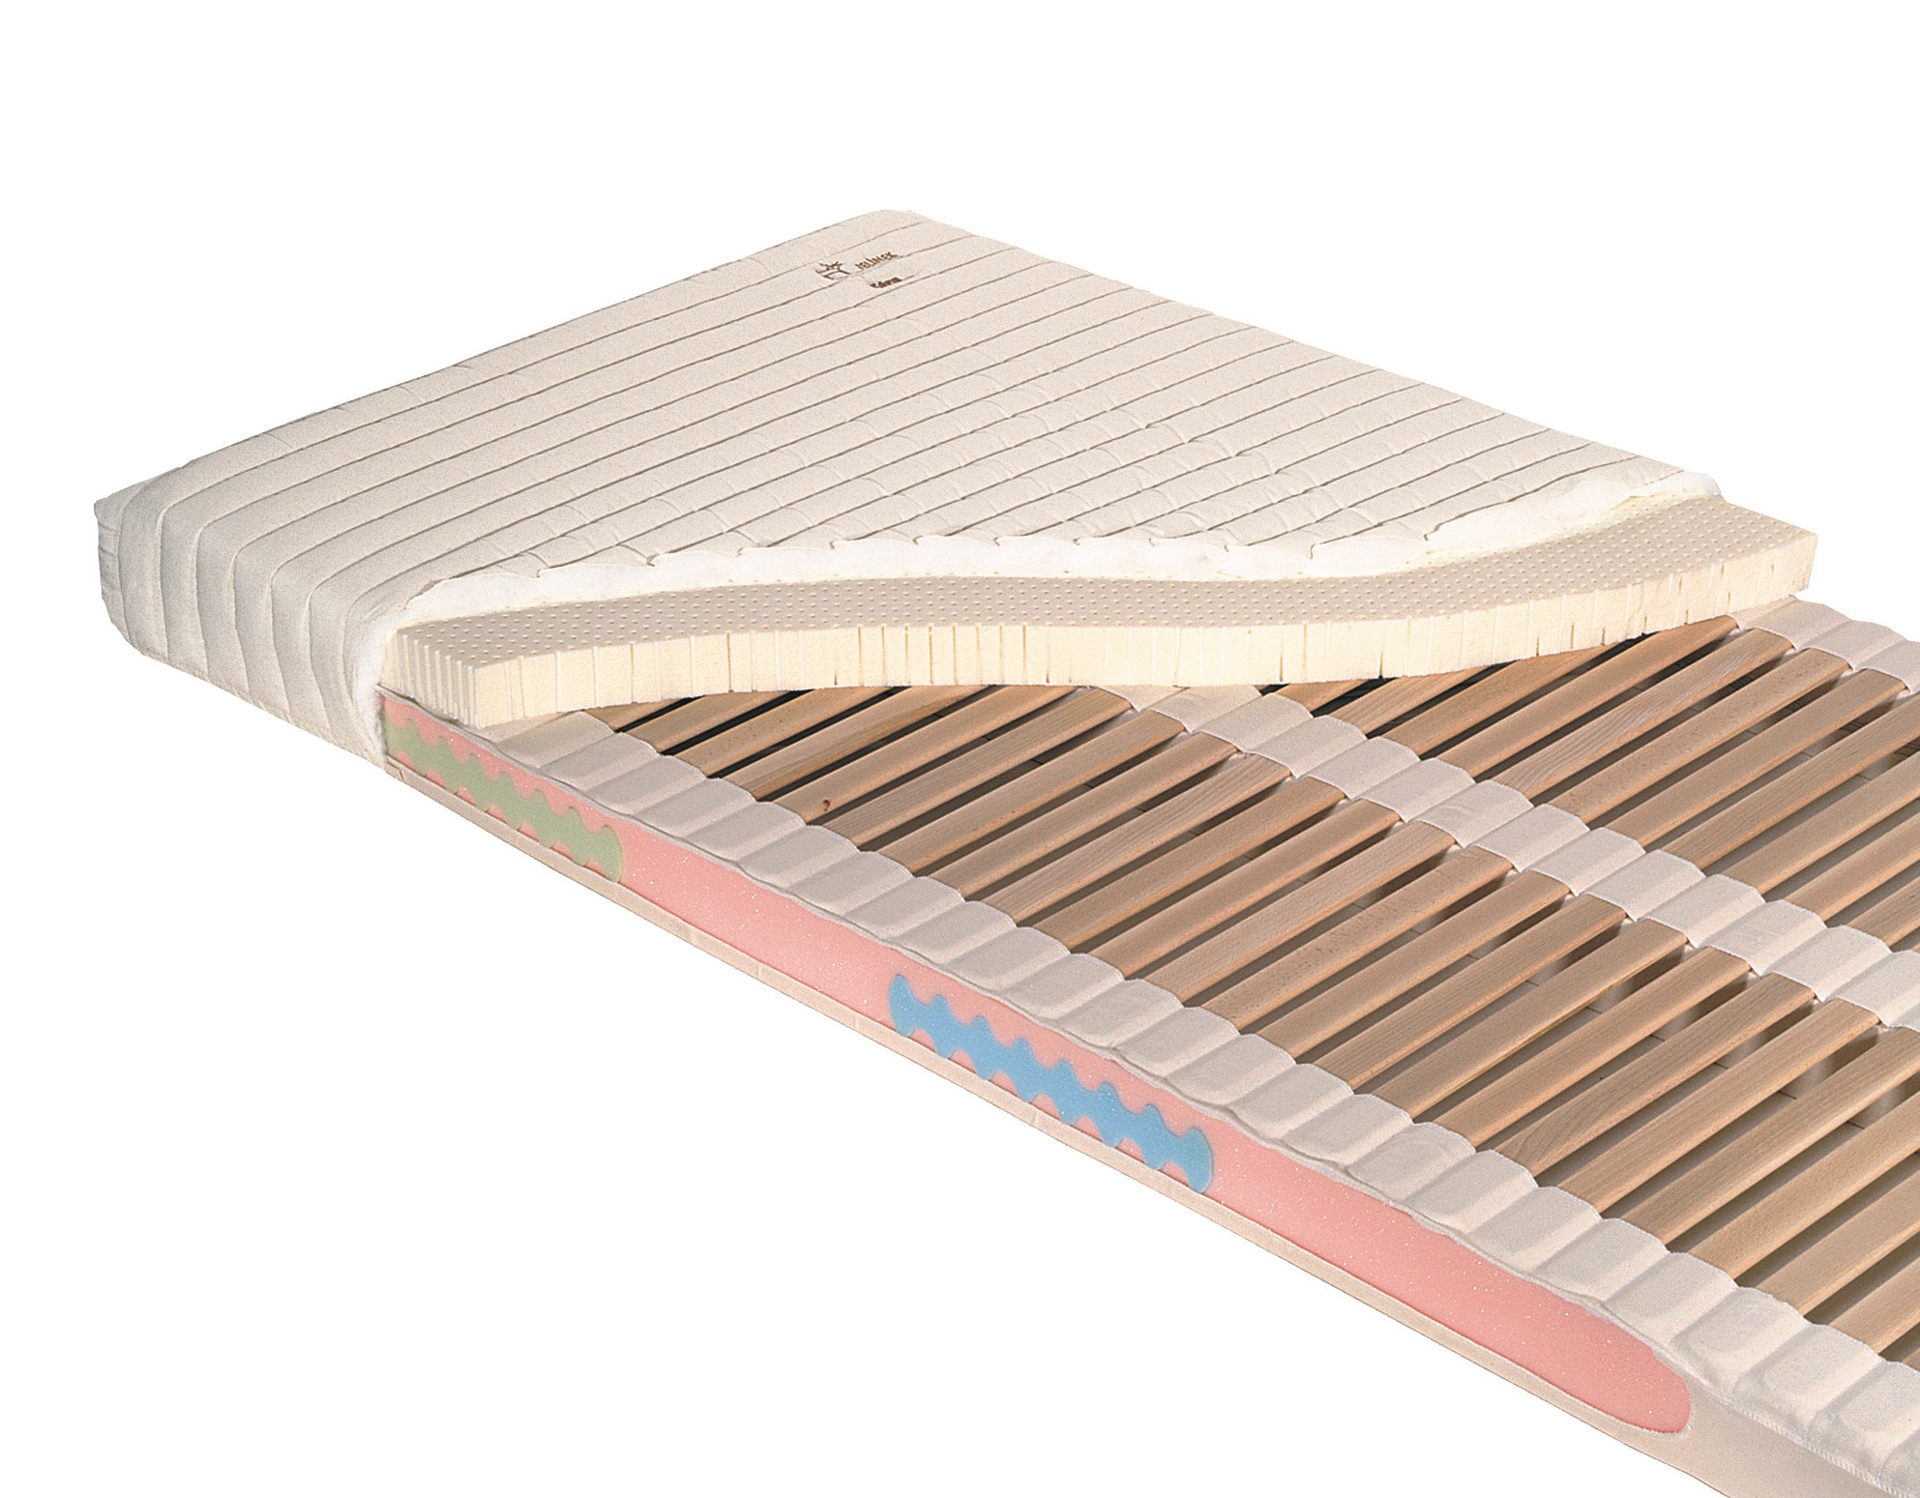 Orthopedic slatted mattress SARA classic now available for next day!